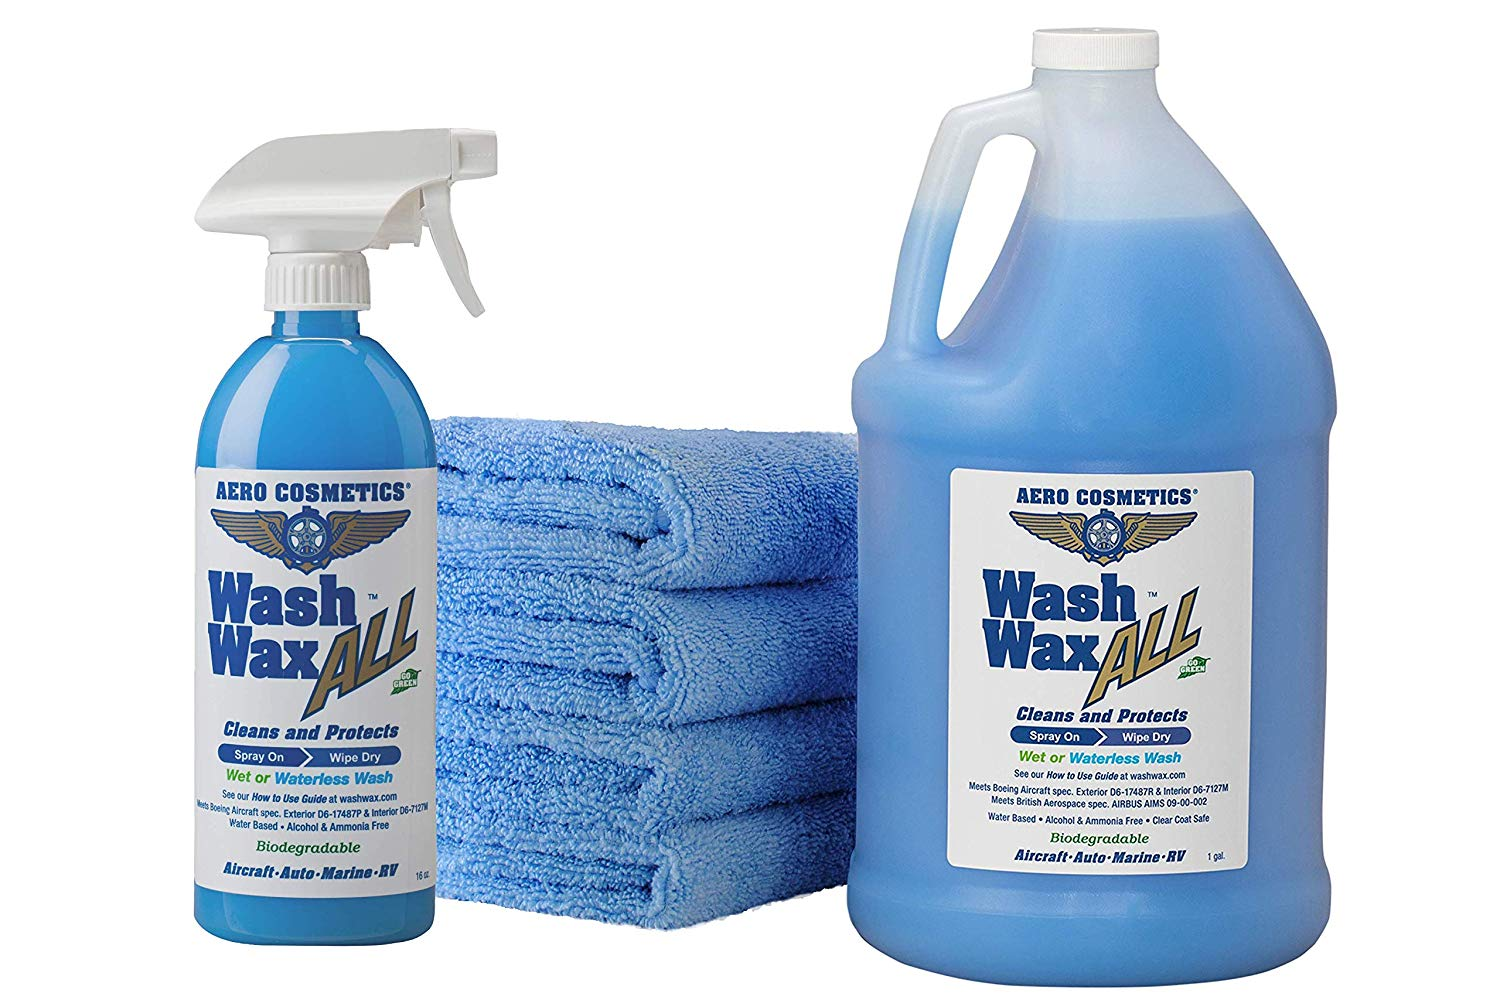 The 10 Best Car Wash Kits to Buy 2019 - Auto Quarterly